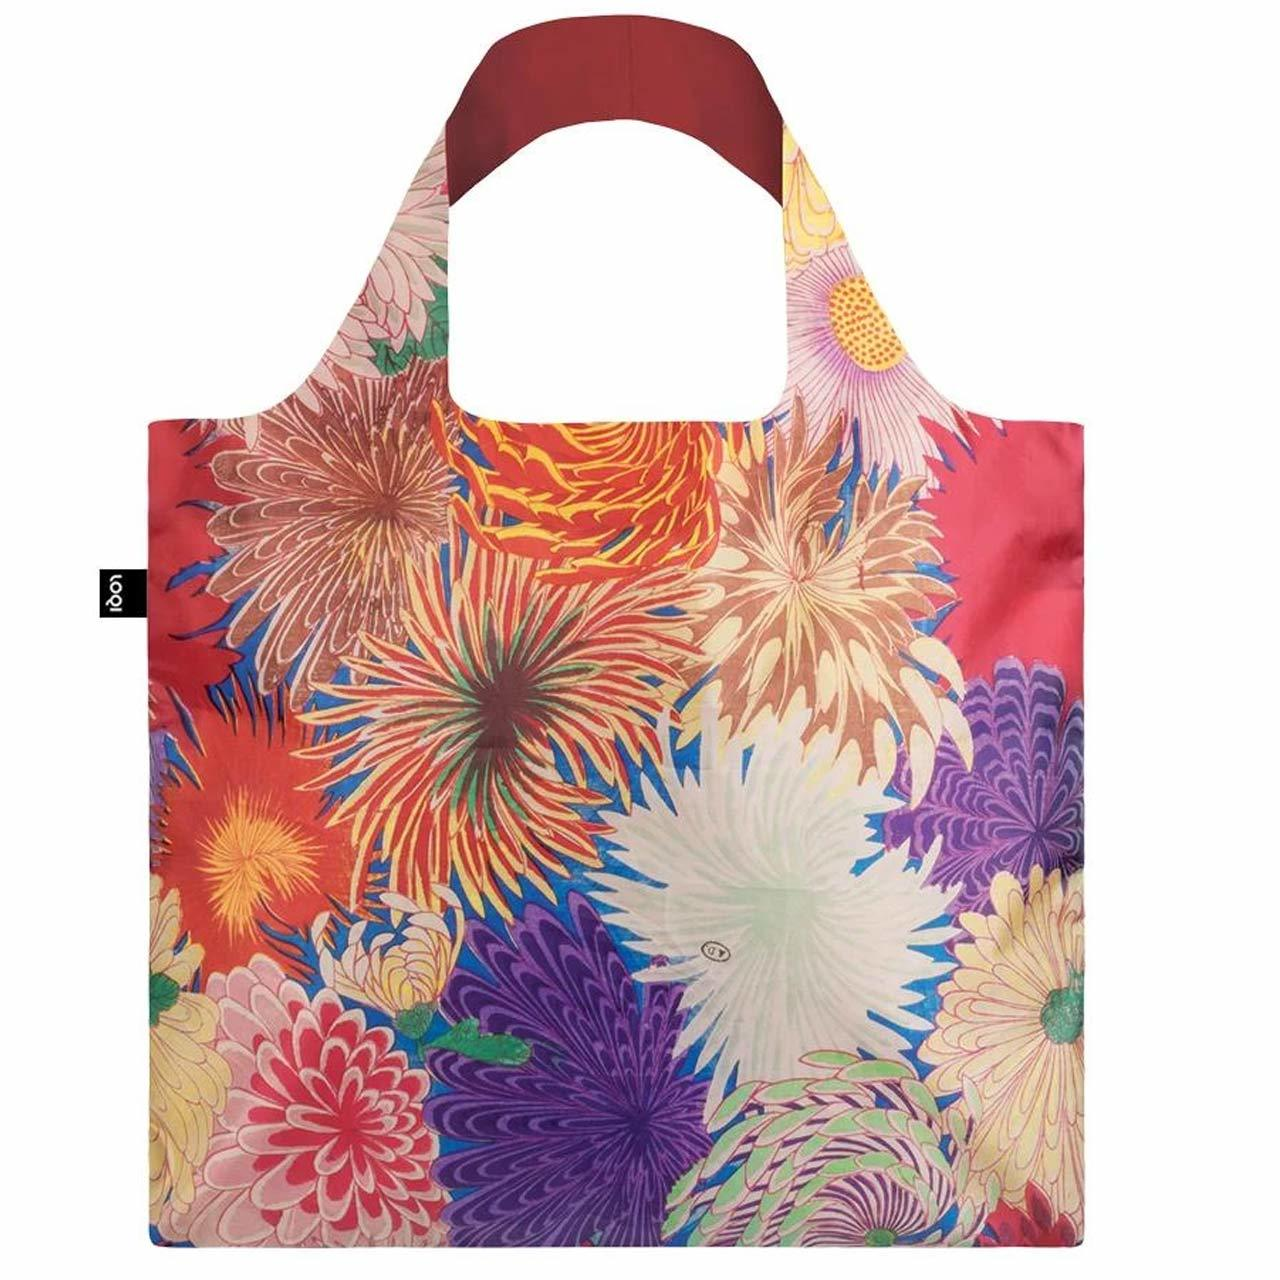 LOQI Museum of Decorative Arts Chrysanthemum Bag